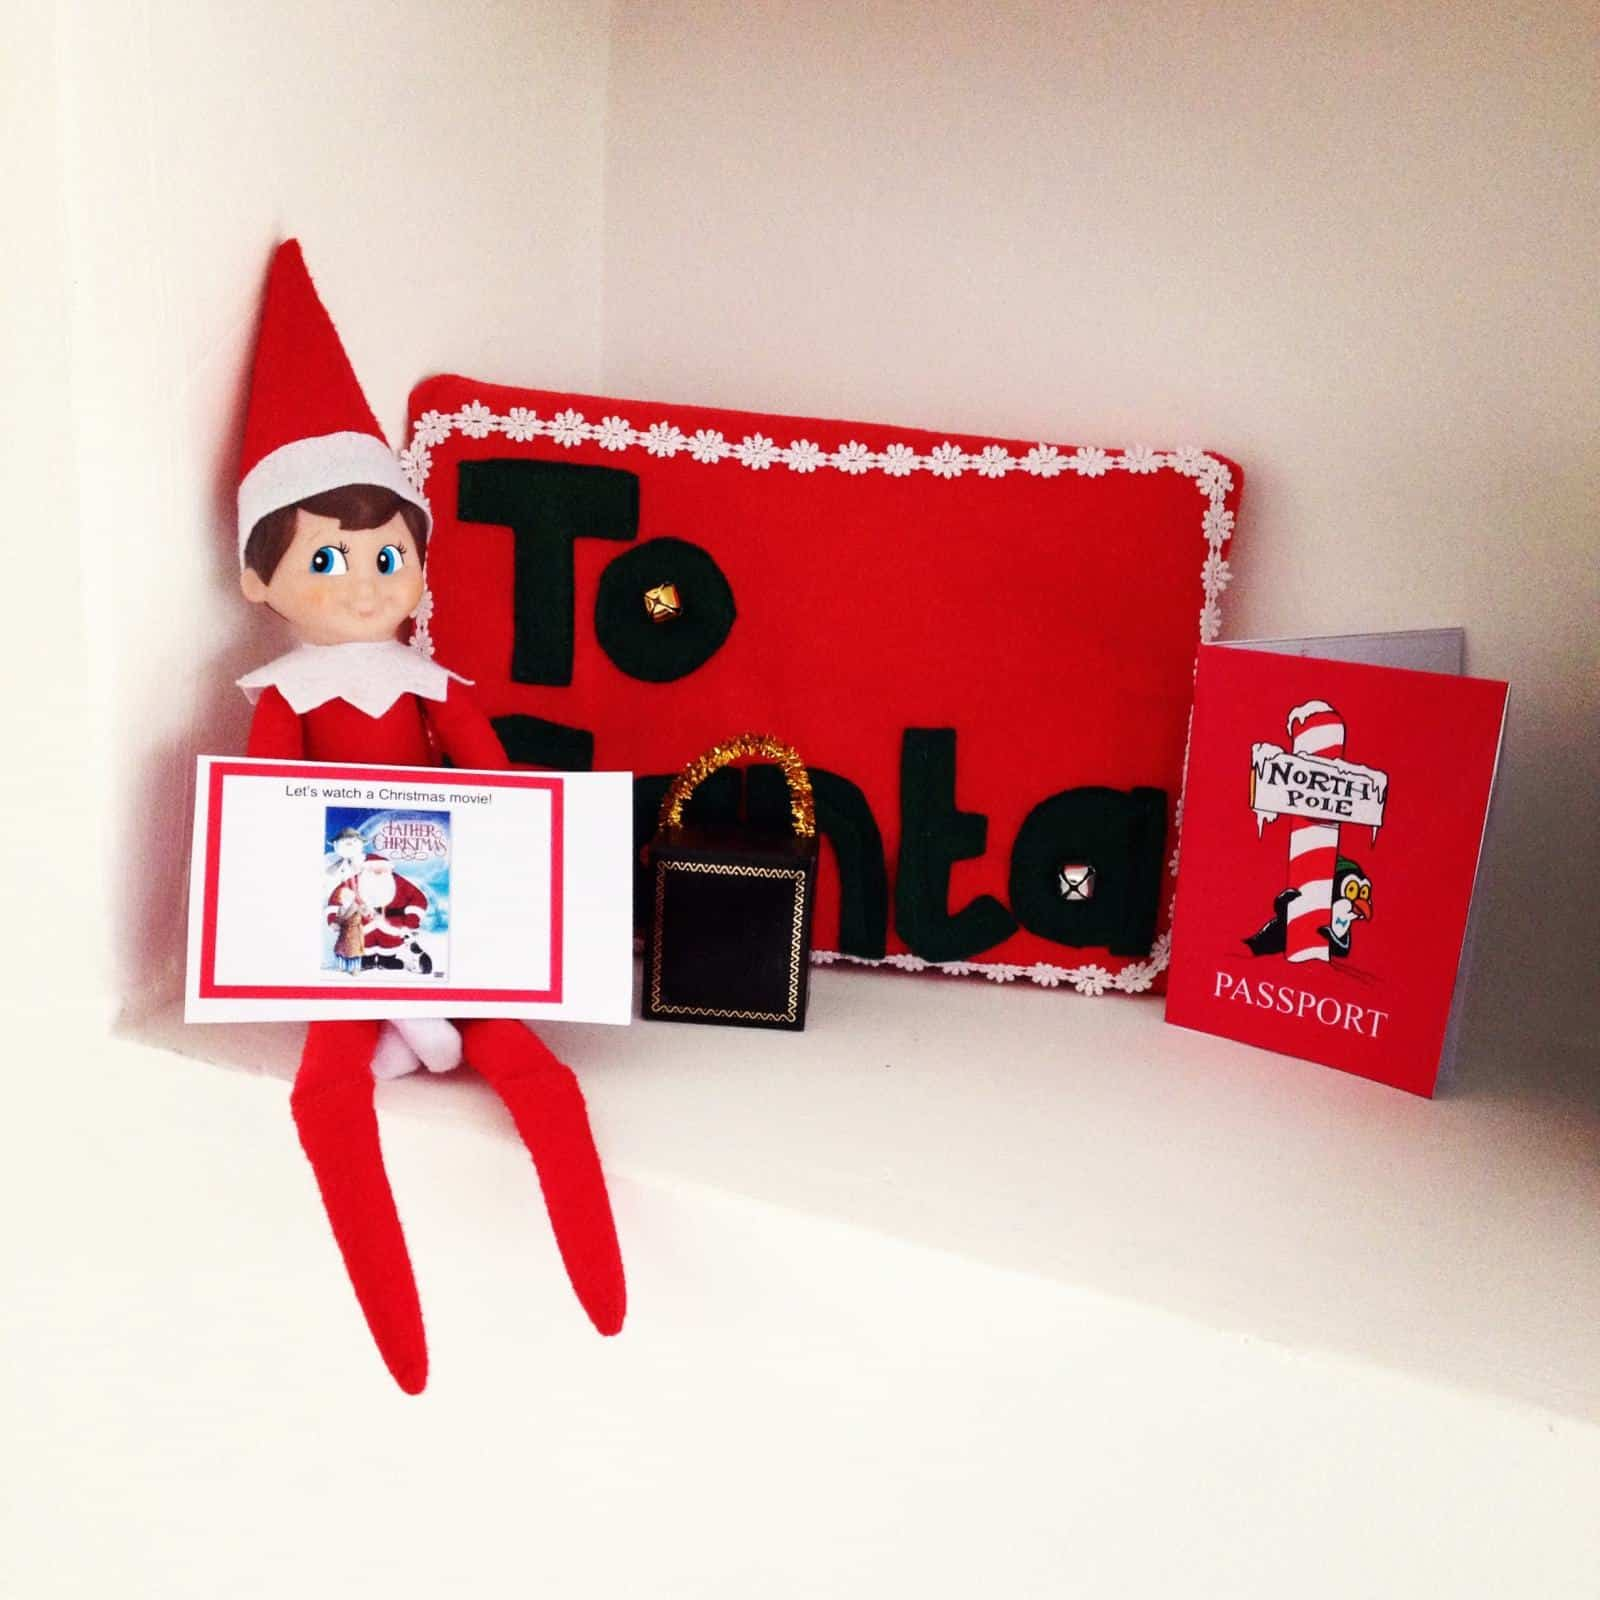 Elf on the Shelf leaving notes to watch a Christmas movie